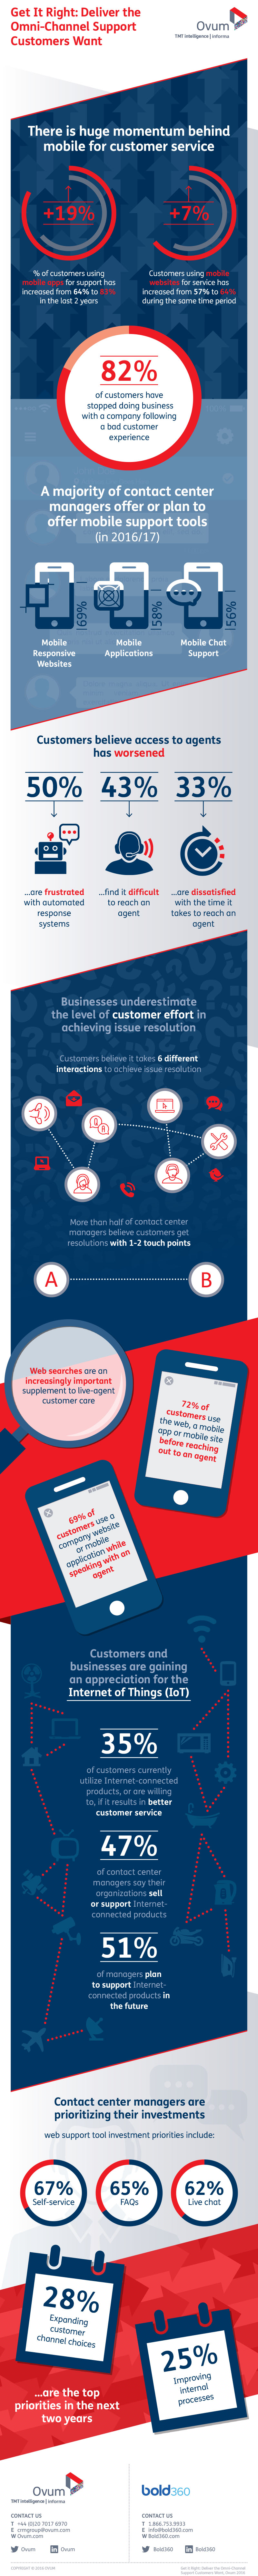 omni-channel-support-infographic